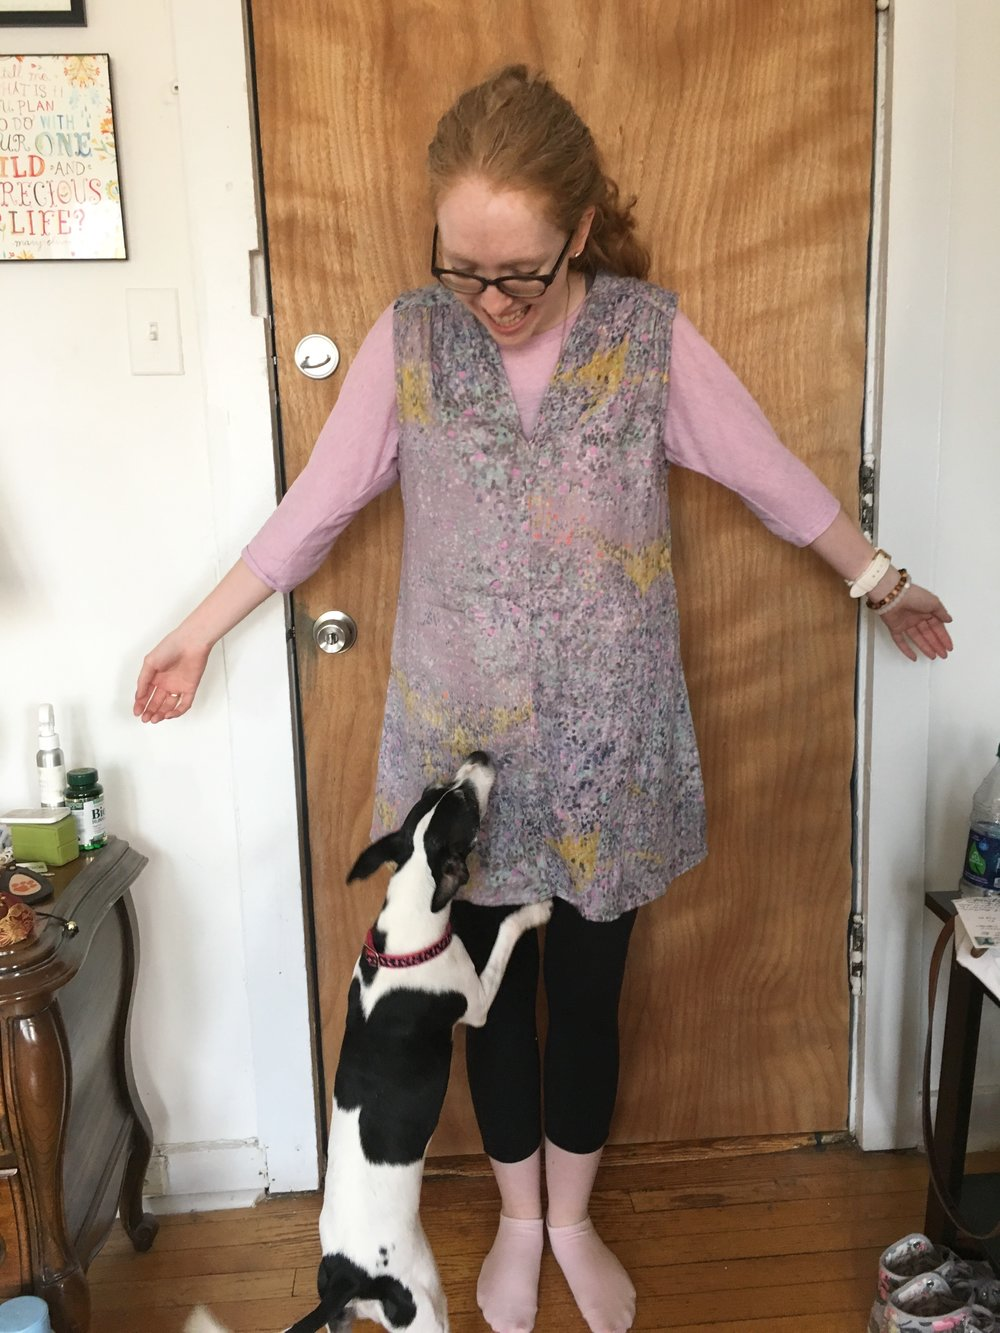 Here's the tunic in less horrible lighting! Yes, I tried it on immediately, over my clothes, on Saturday. Mieze was also very excited about it. 🐶